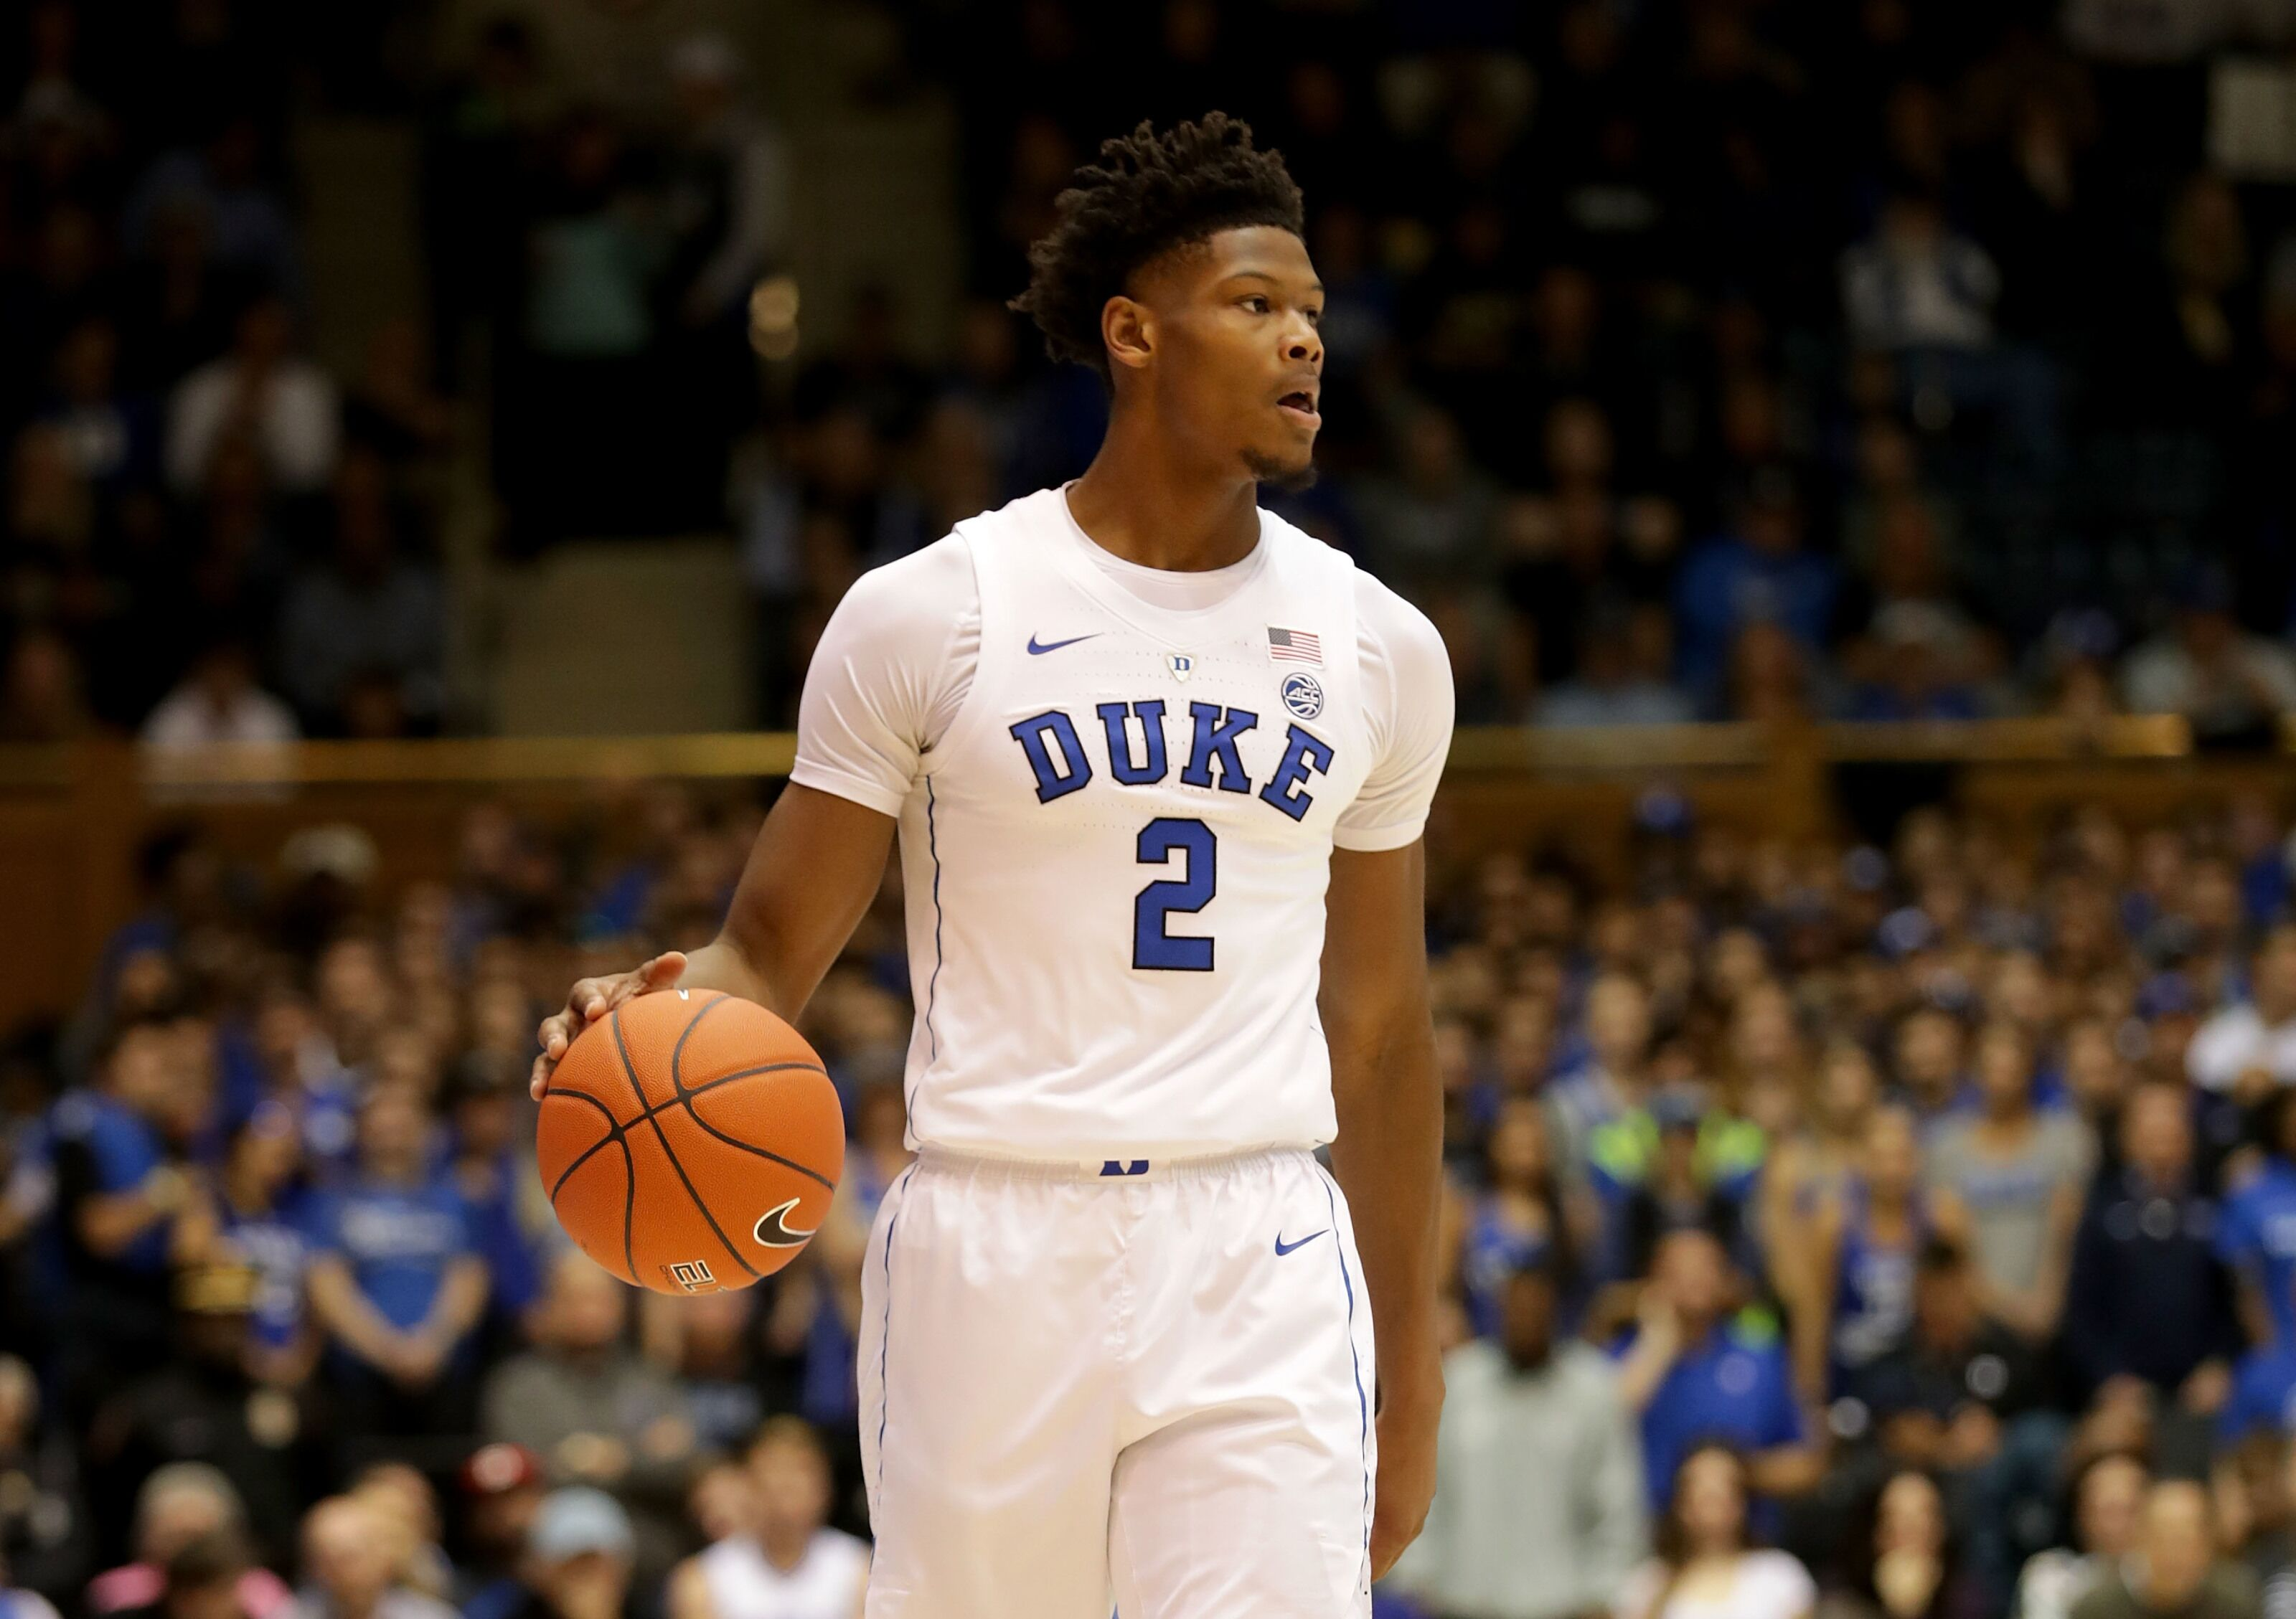 Duke Basketball Introducing Cam Reddish As The Swift Baller